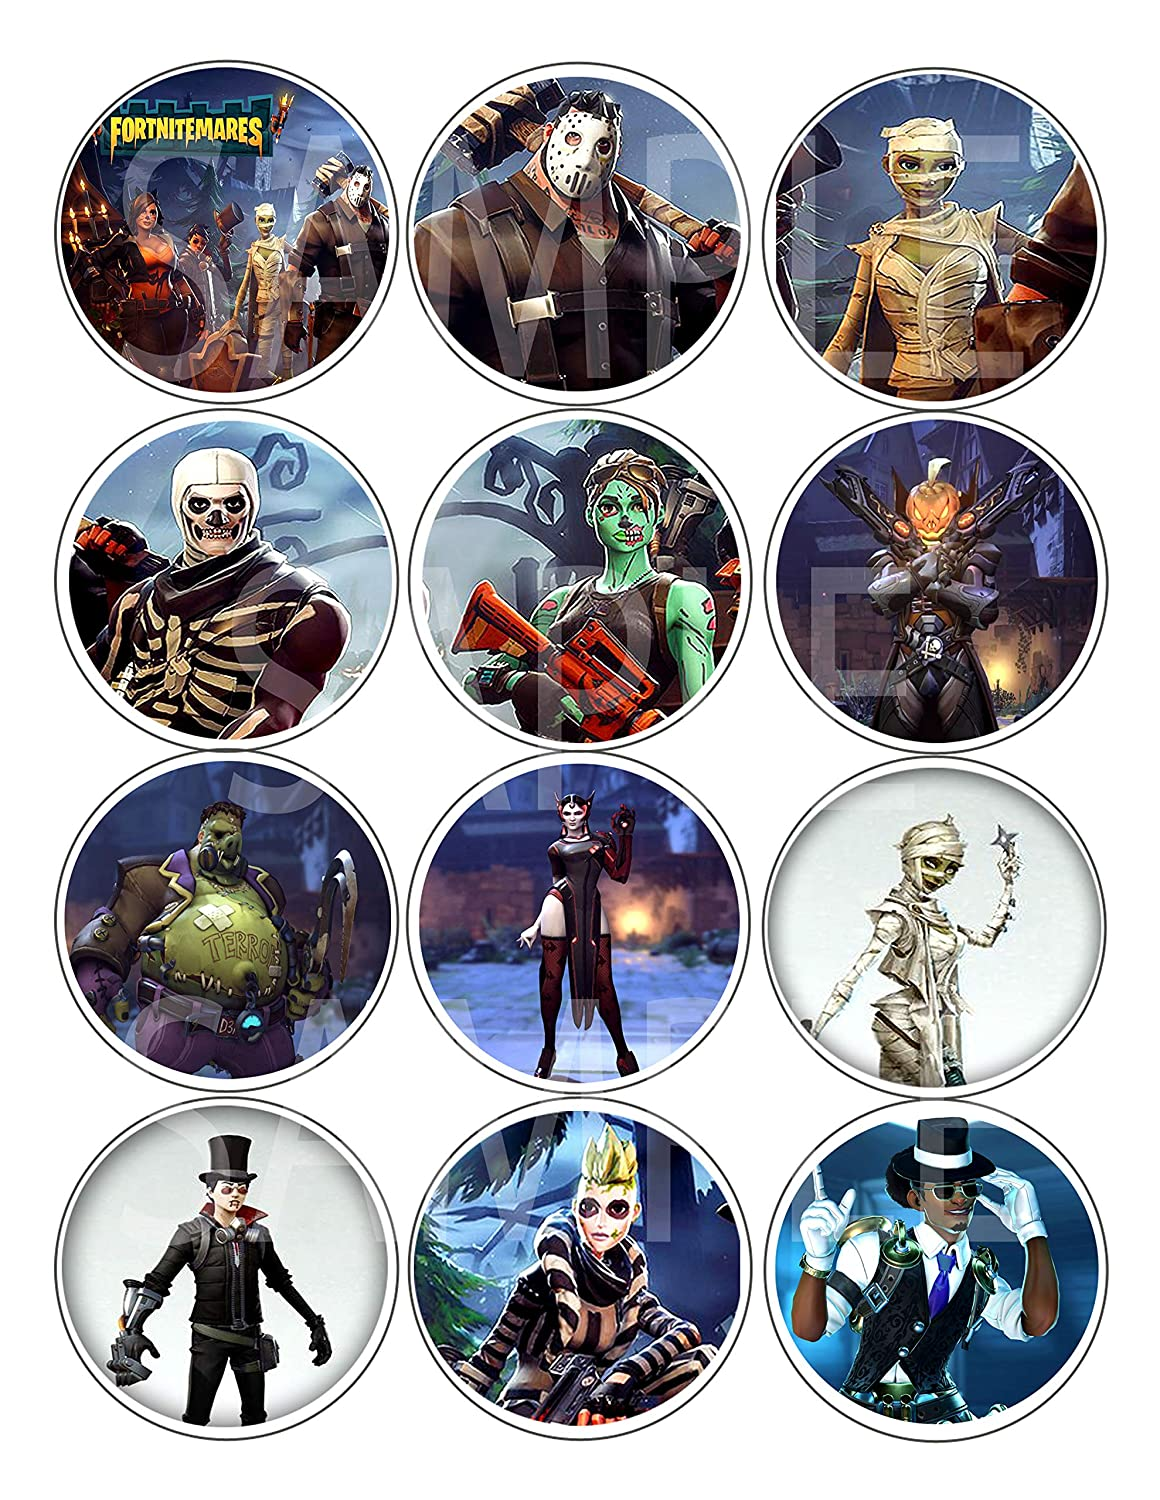 """Large 2.5/"""" Round Circle DIY Stickers to Place onto Party Favor Bags Fortnitemares Stickers Cards Boxes or Containers -12 pcs Fort Nightmares Halloween Party Over Here"""